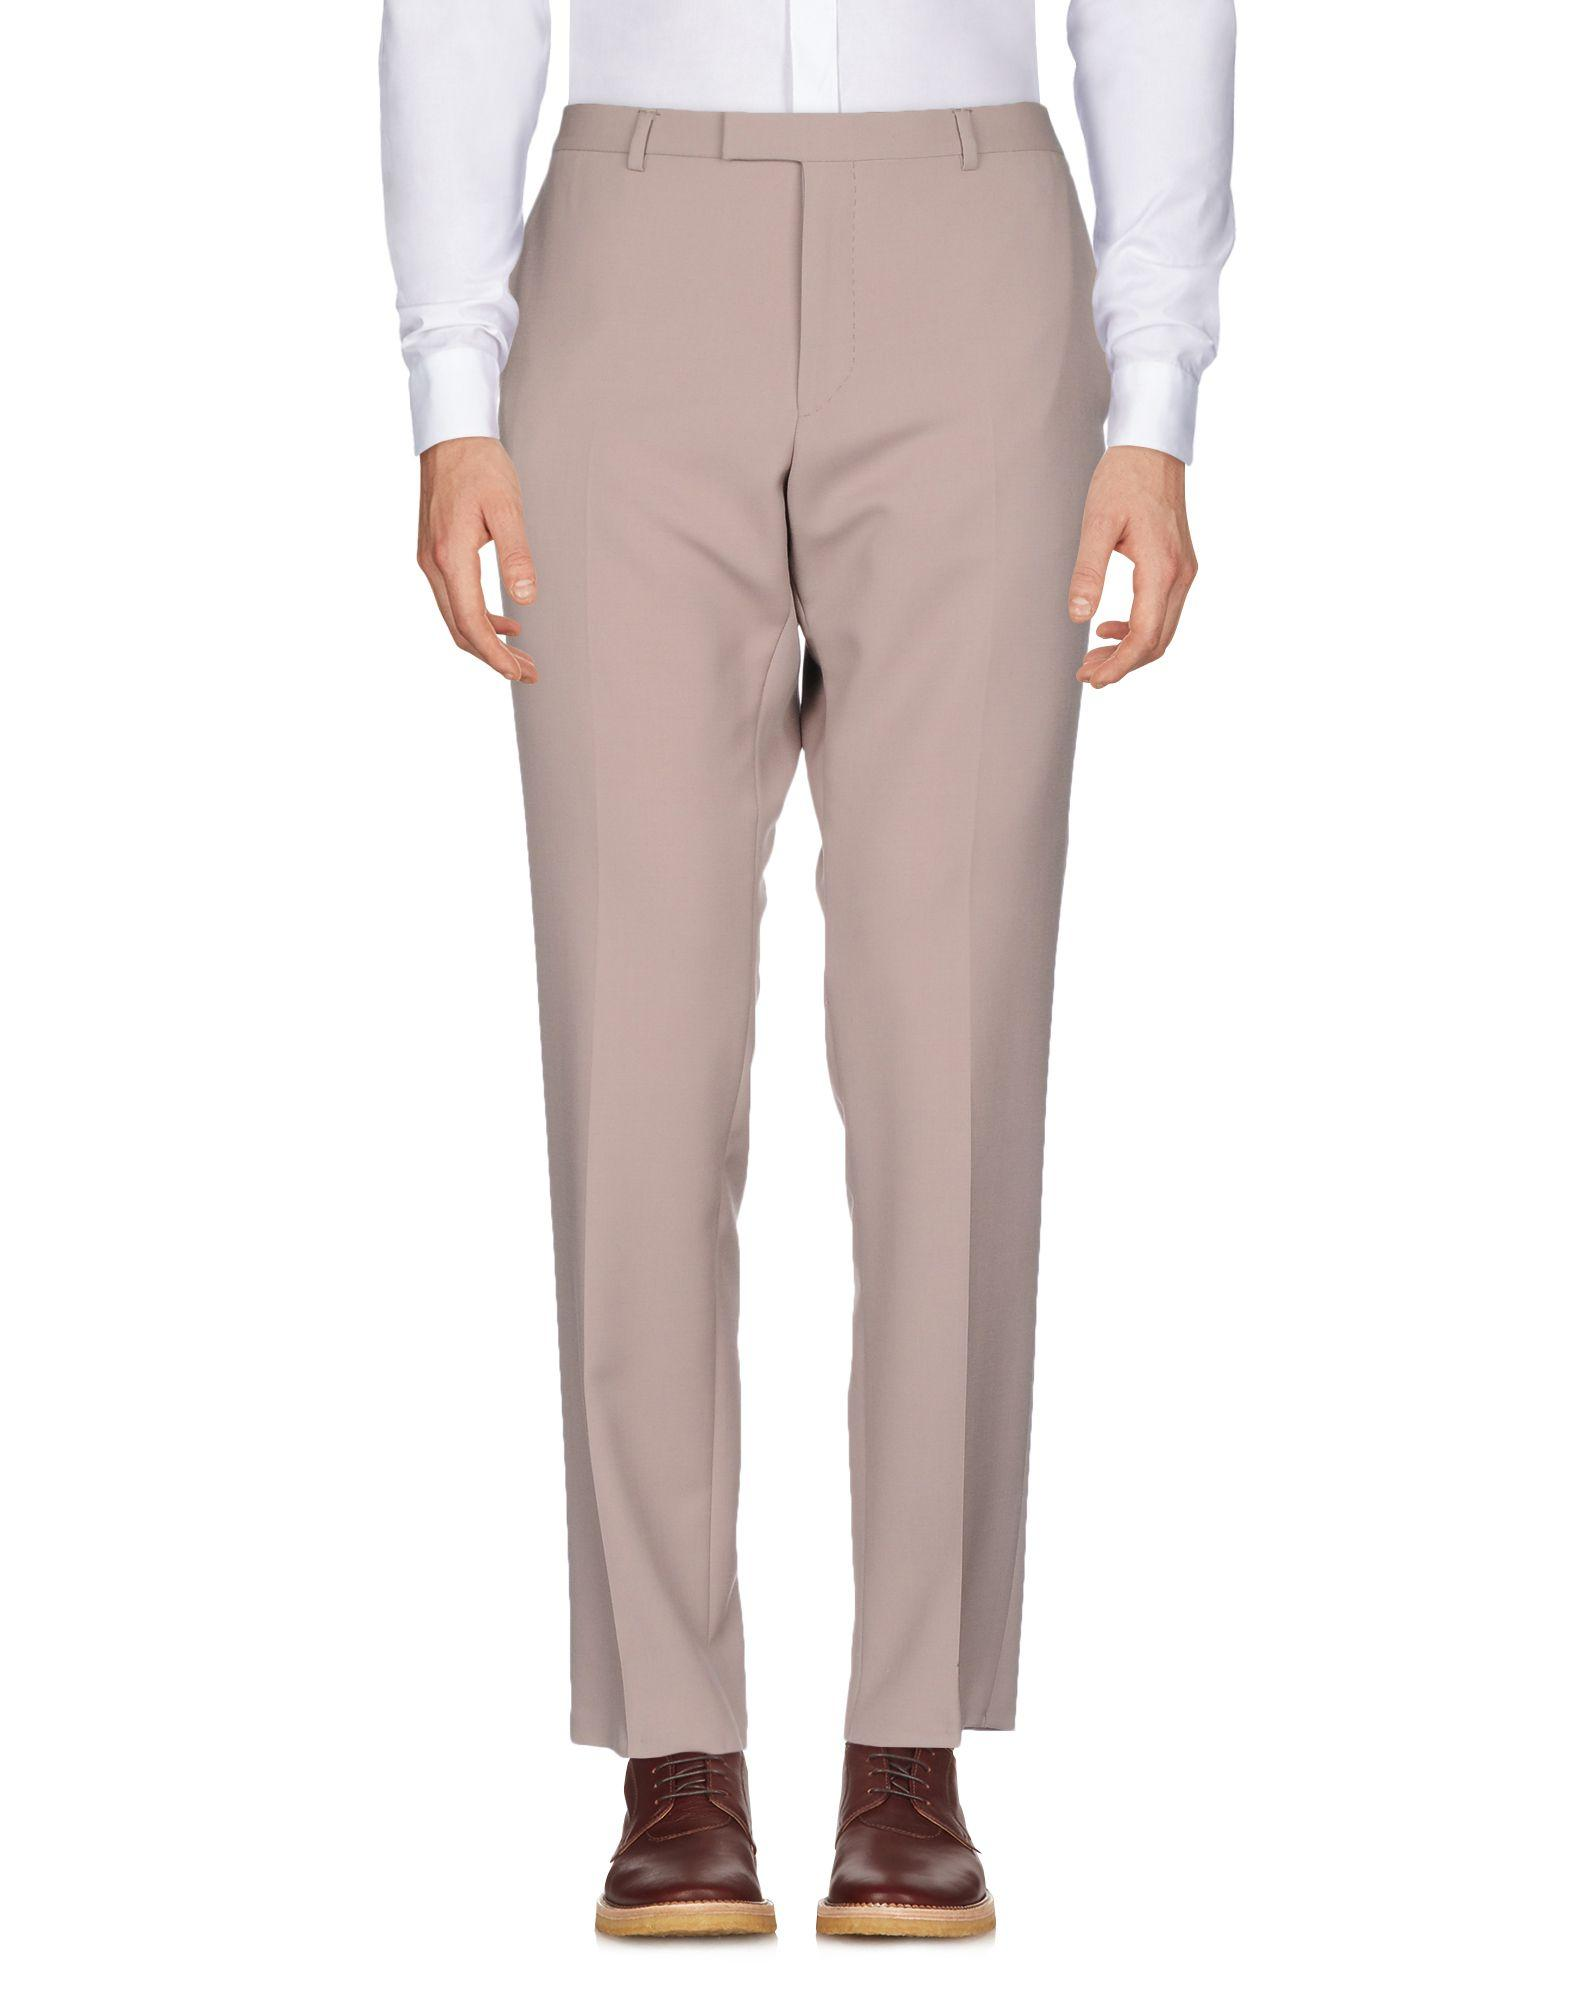 Gucci Casual Pants In Camel